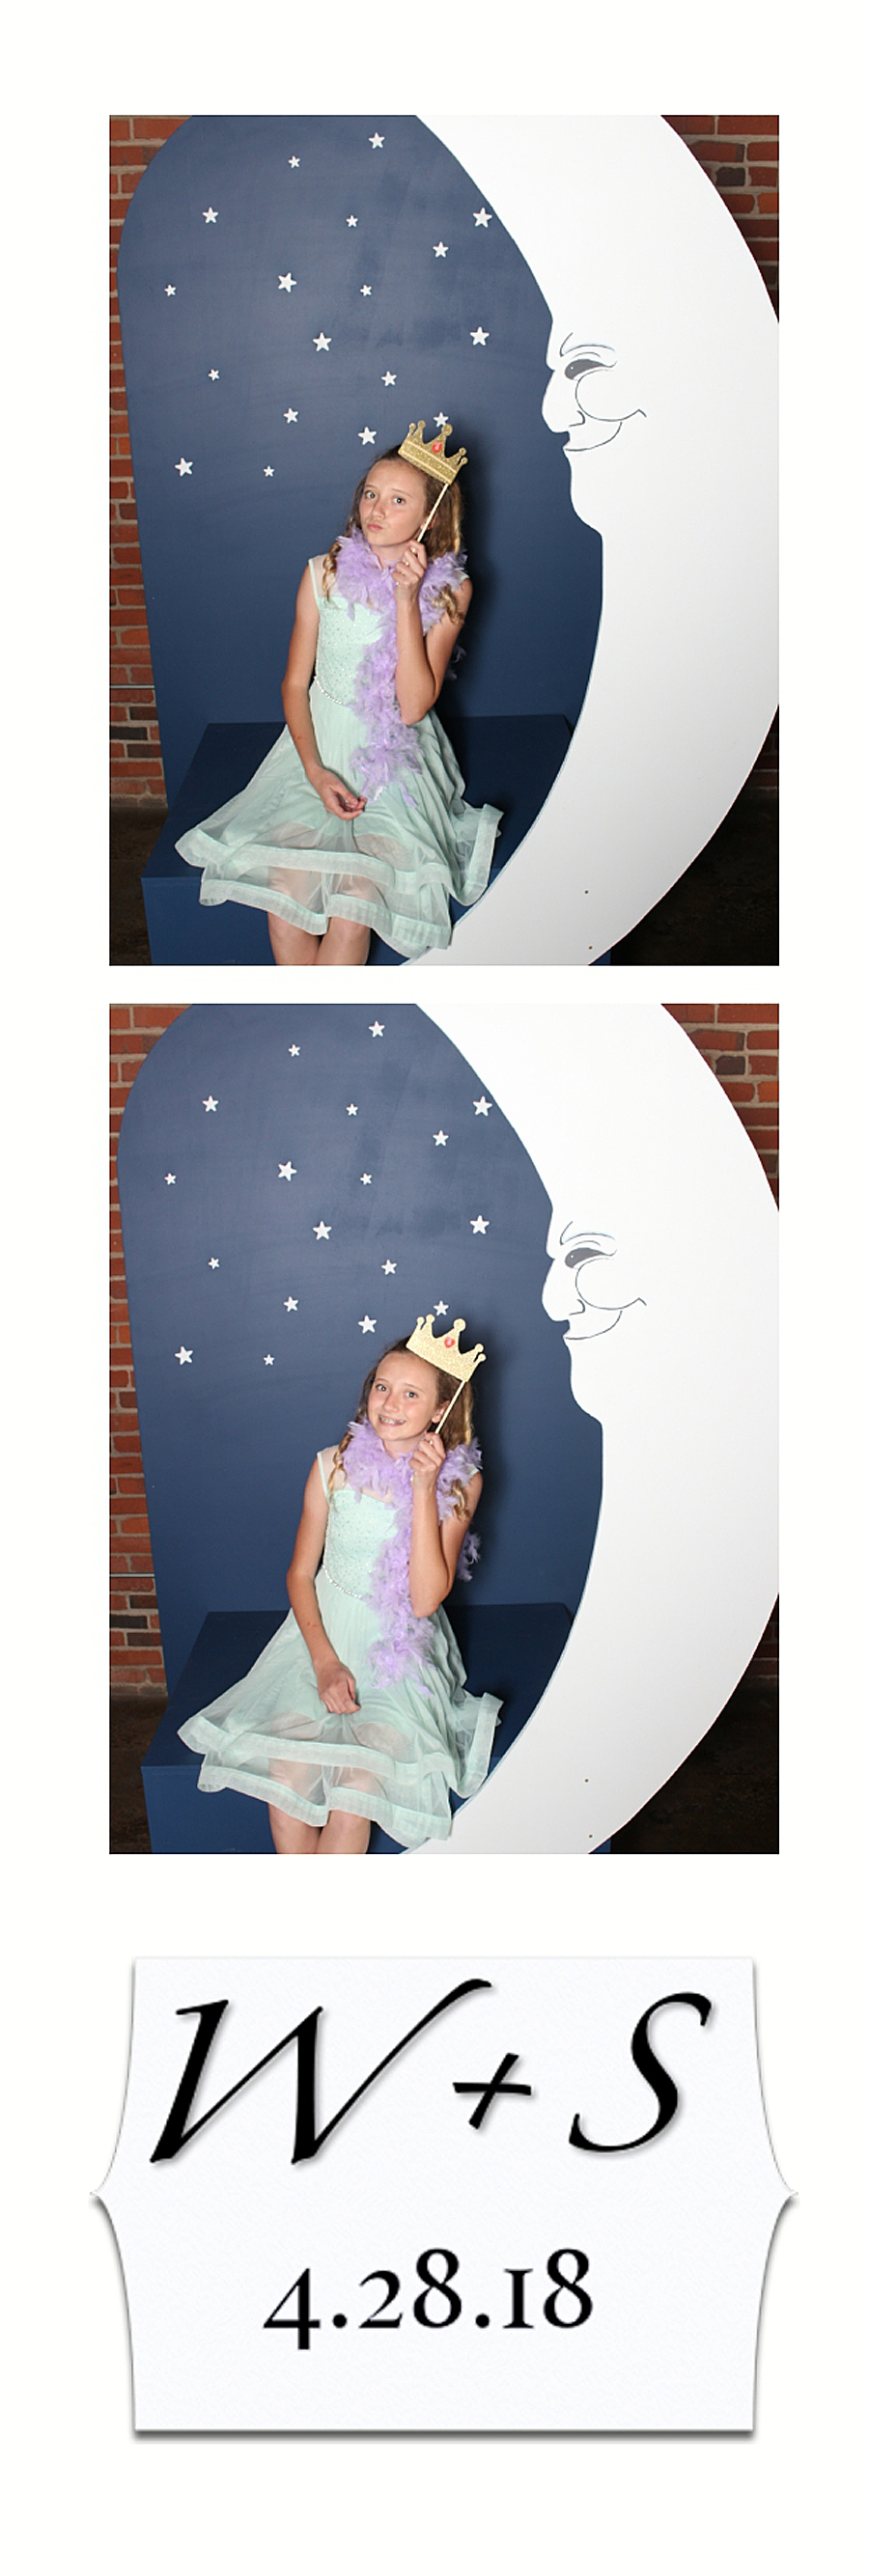 Knoxville Photo Booth_1678.jpg